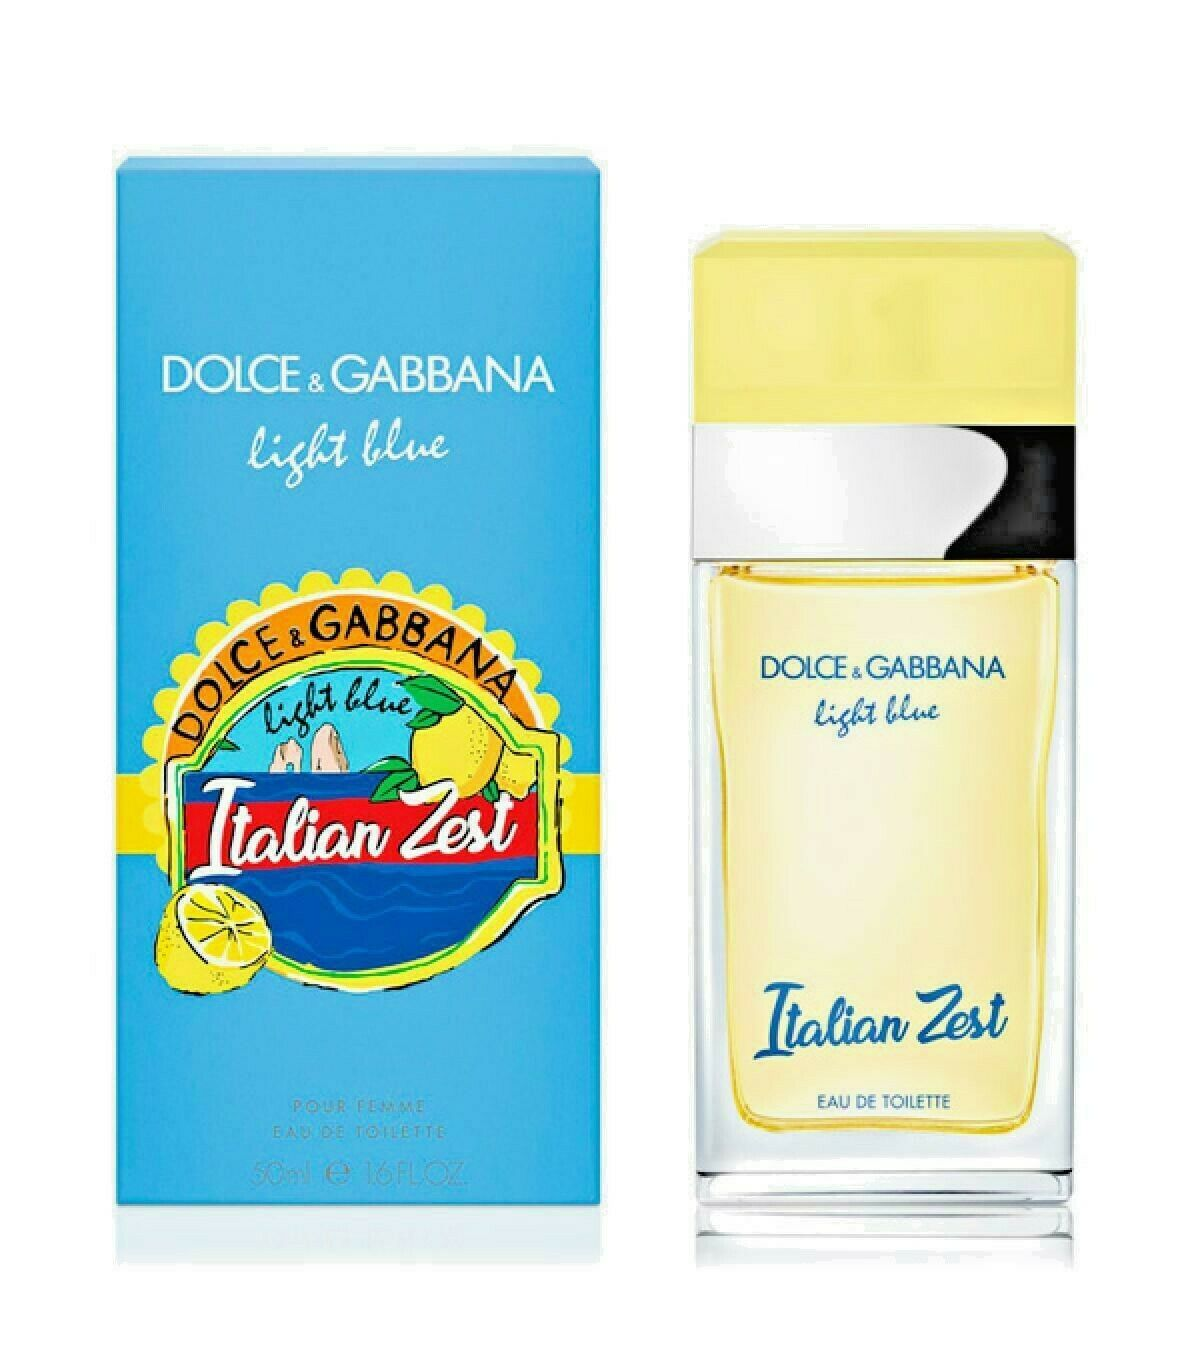 Dolce & Gabbana Light Blue Italian Zest 50ml for Women